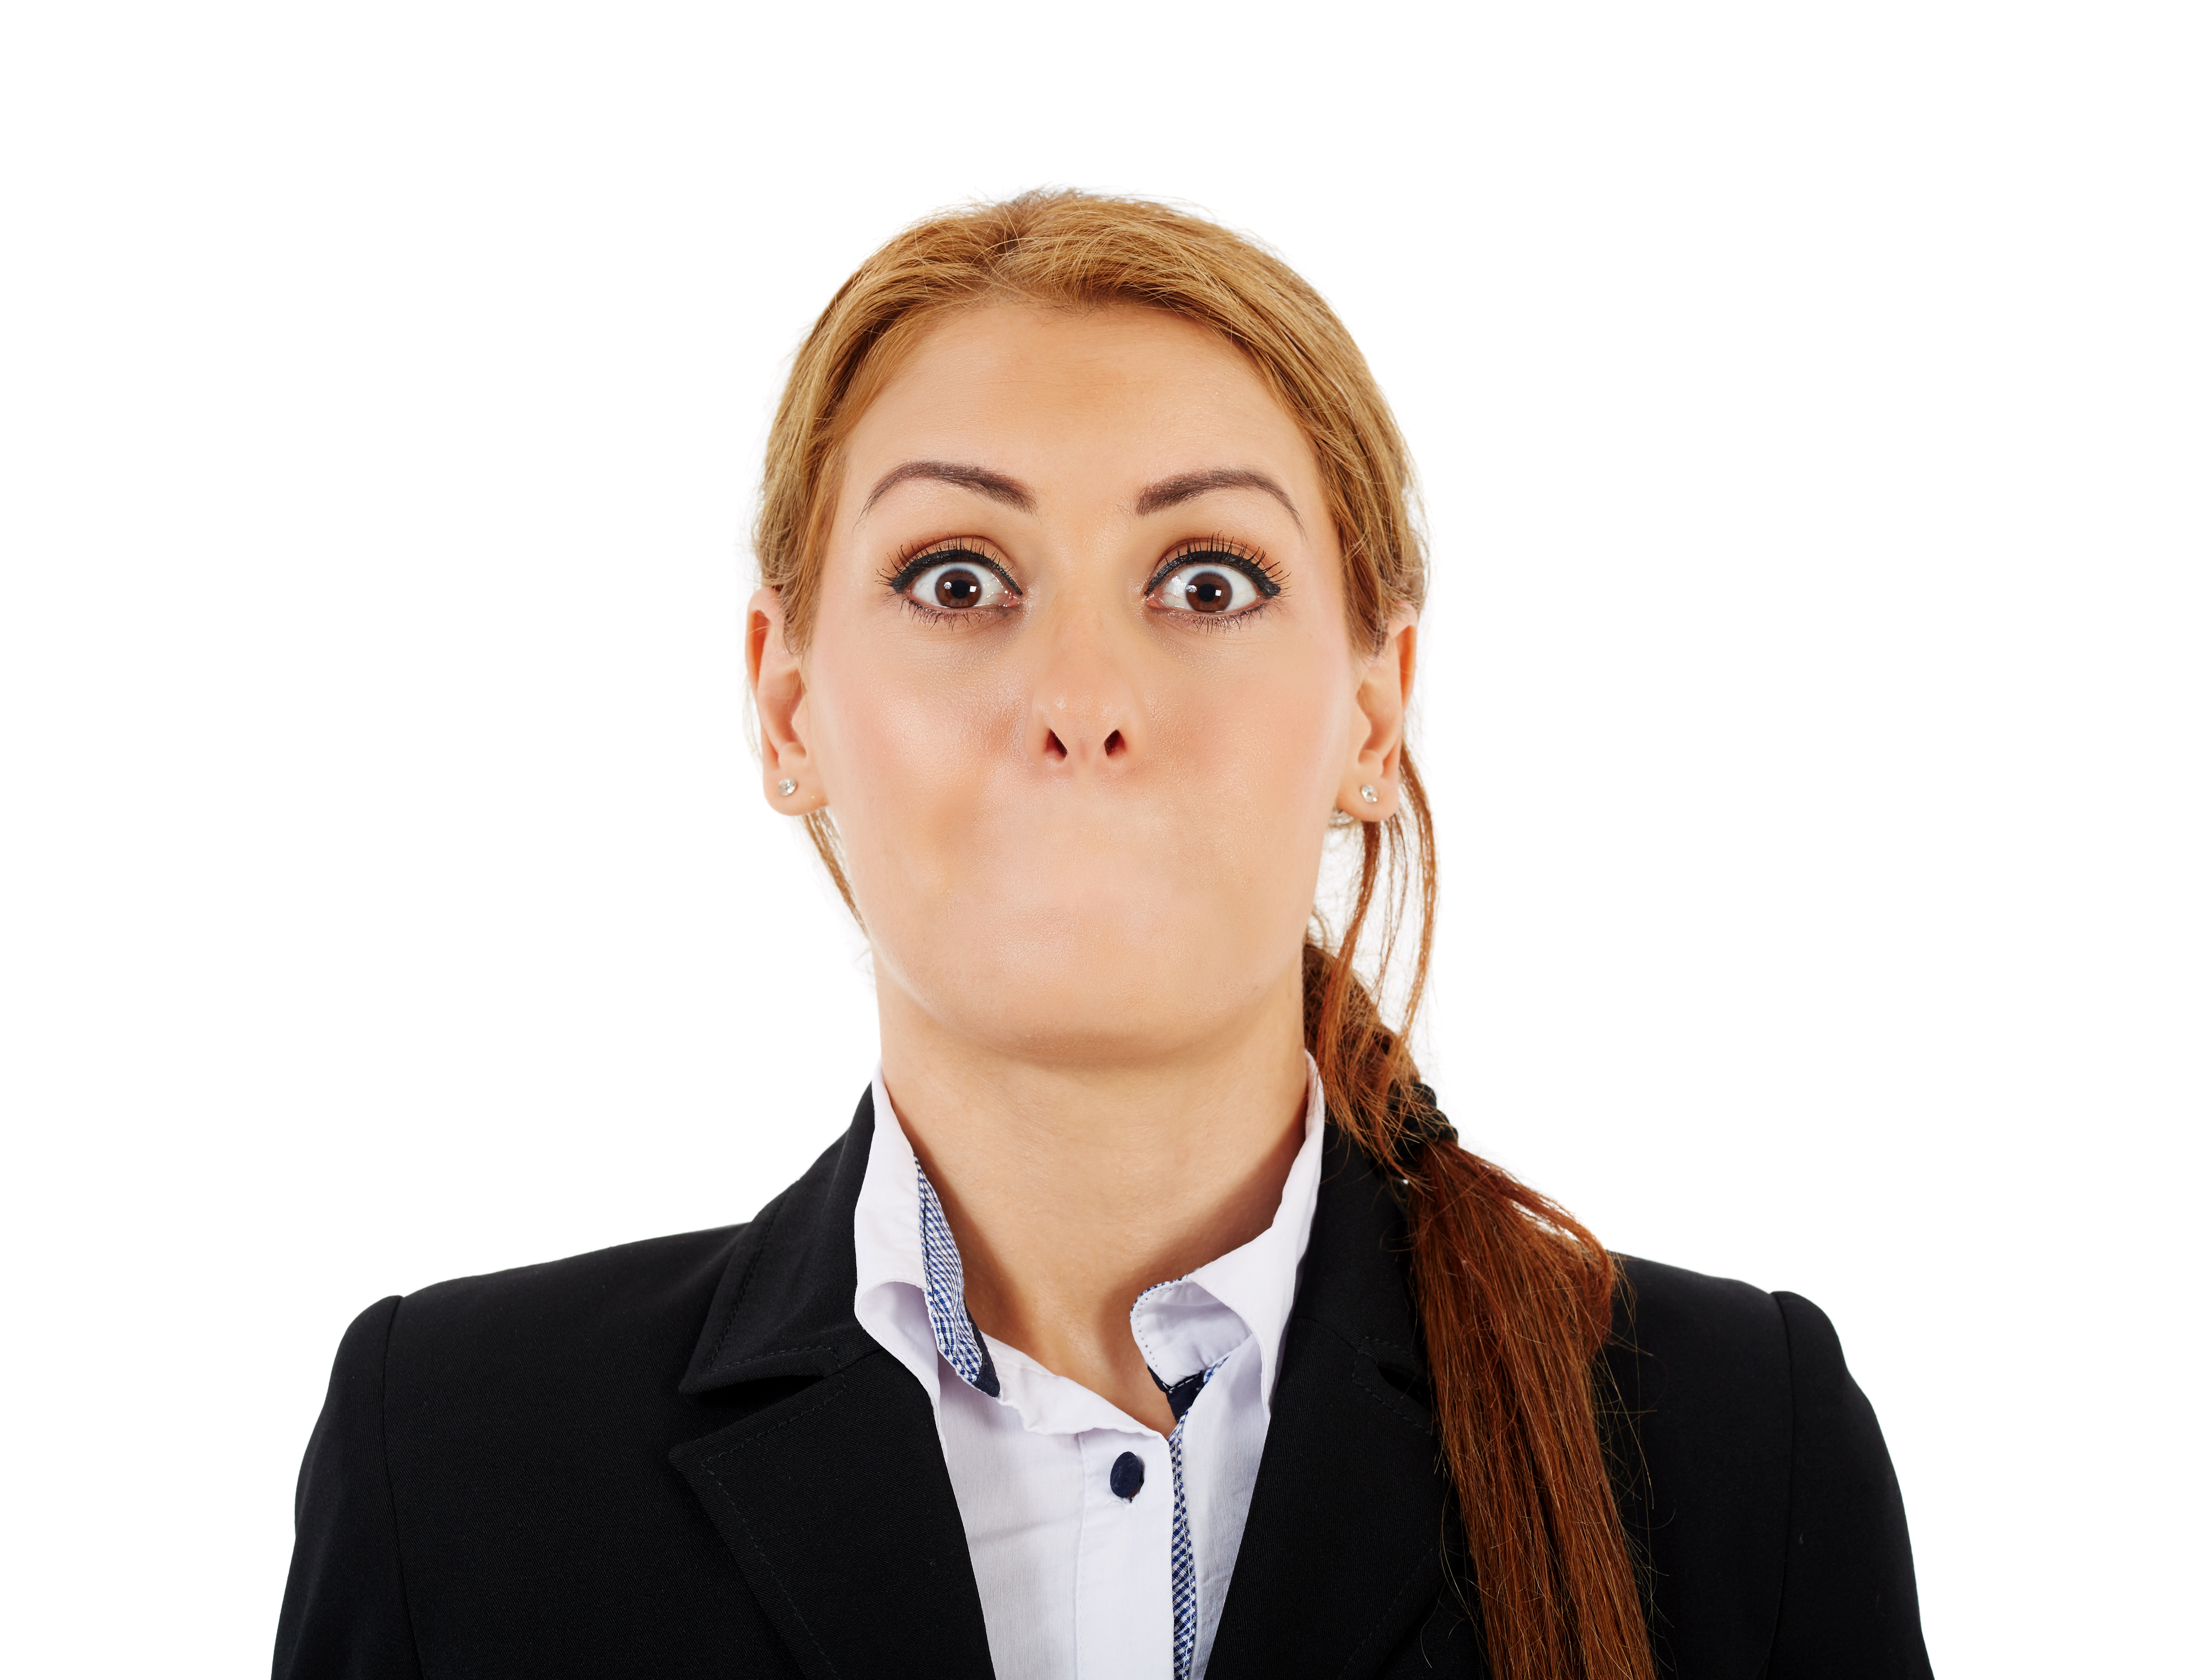 Female businesswoman without her mouth and with a shock expression